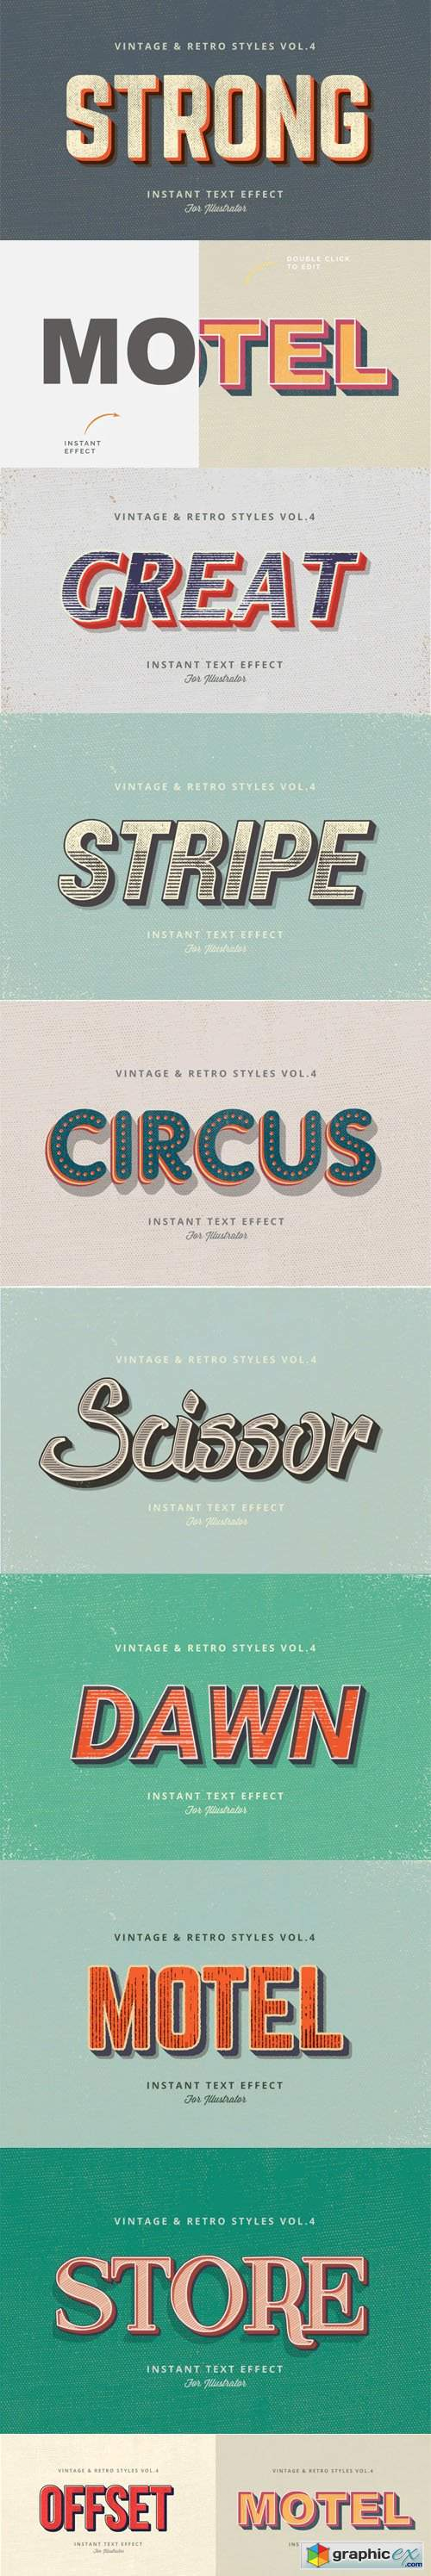 Vintage and Retro Graphic Styles Vol.4 for Adobe Illustrator